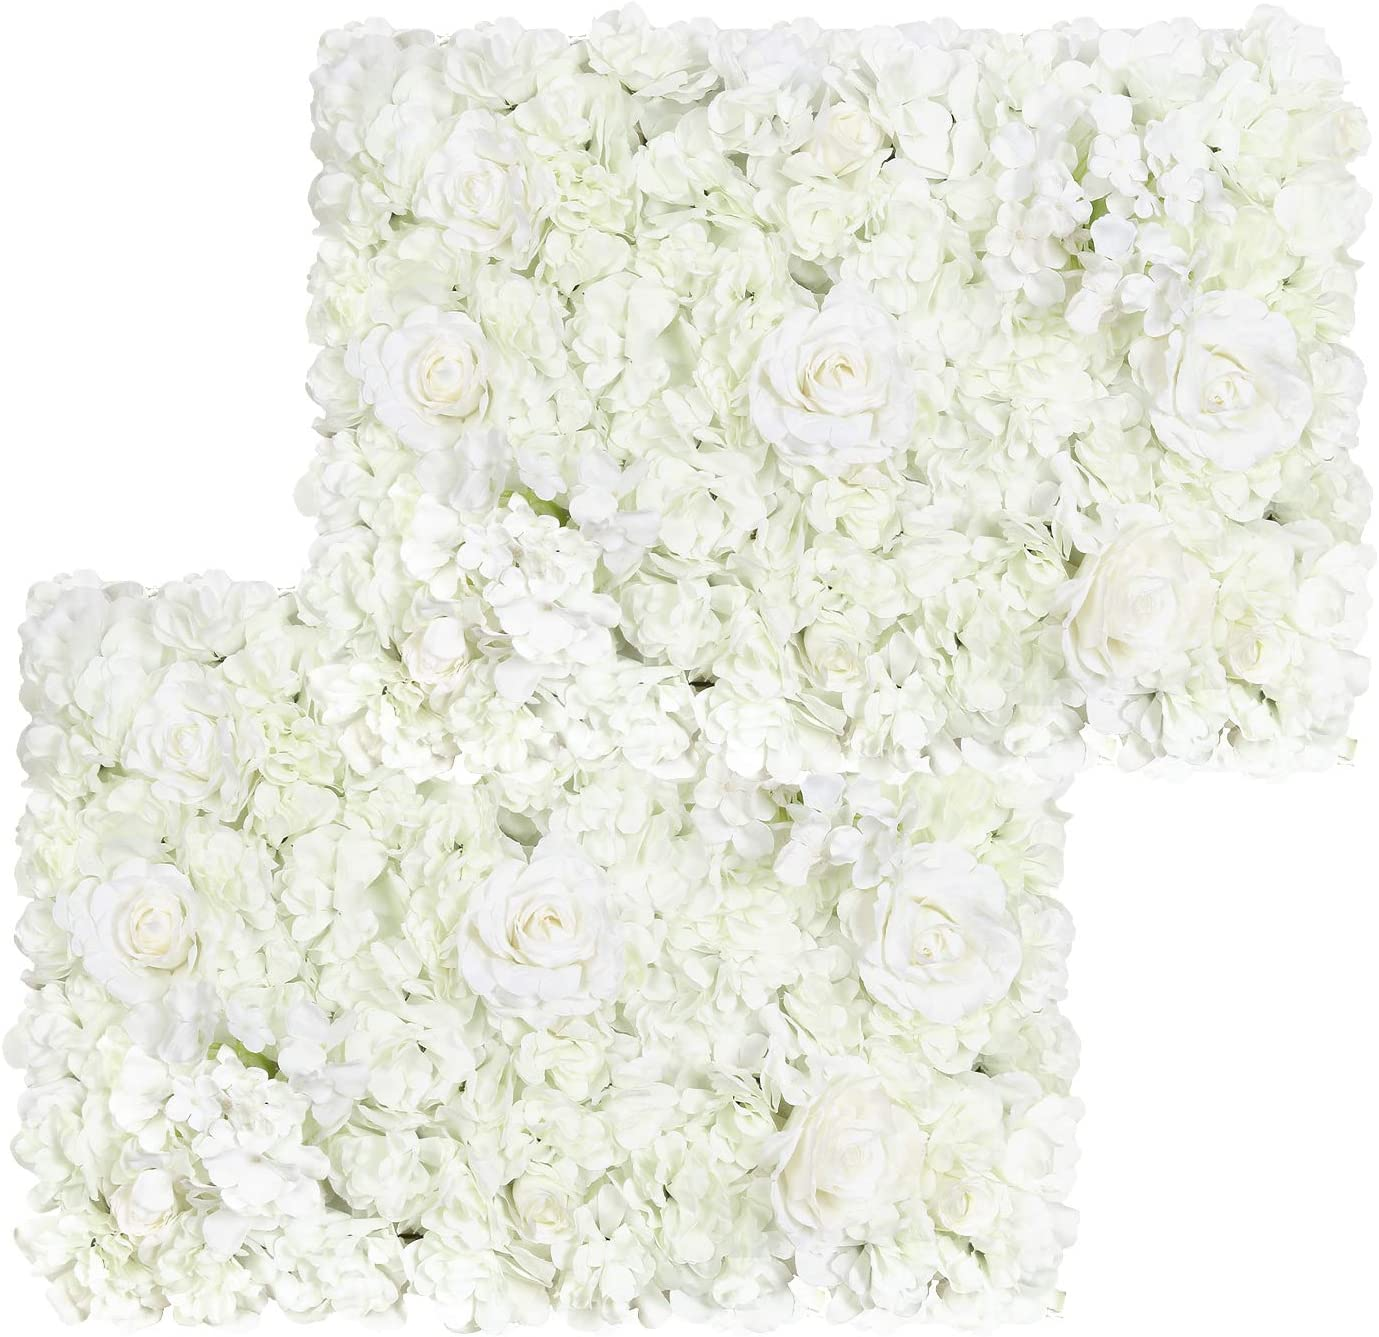 Pauwer Now free shipping Artificial Flower Wall In stock Panels 2 x 16 24